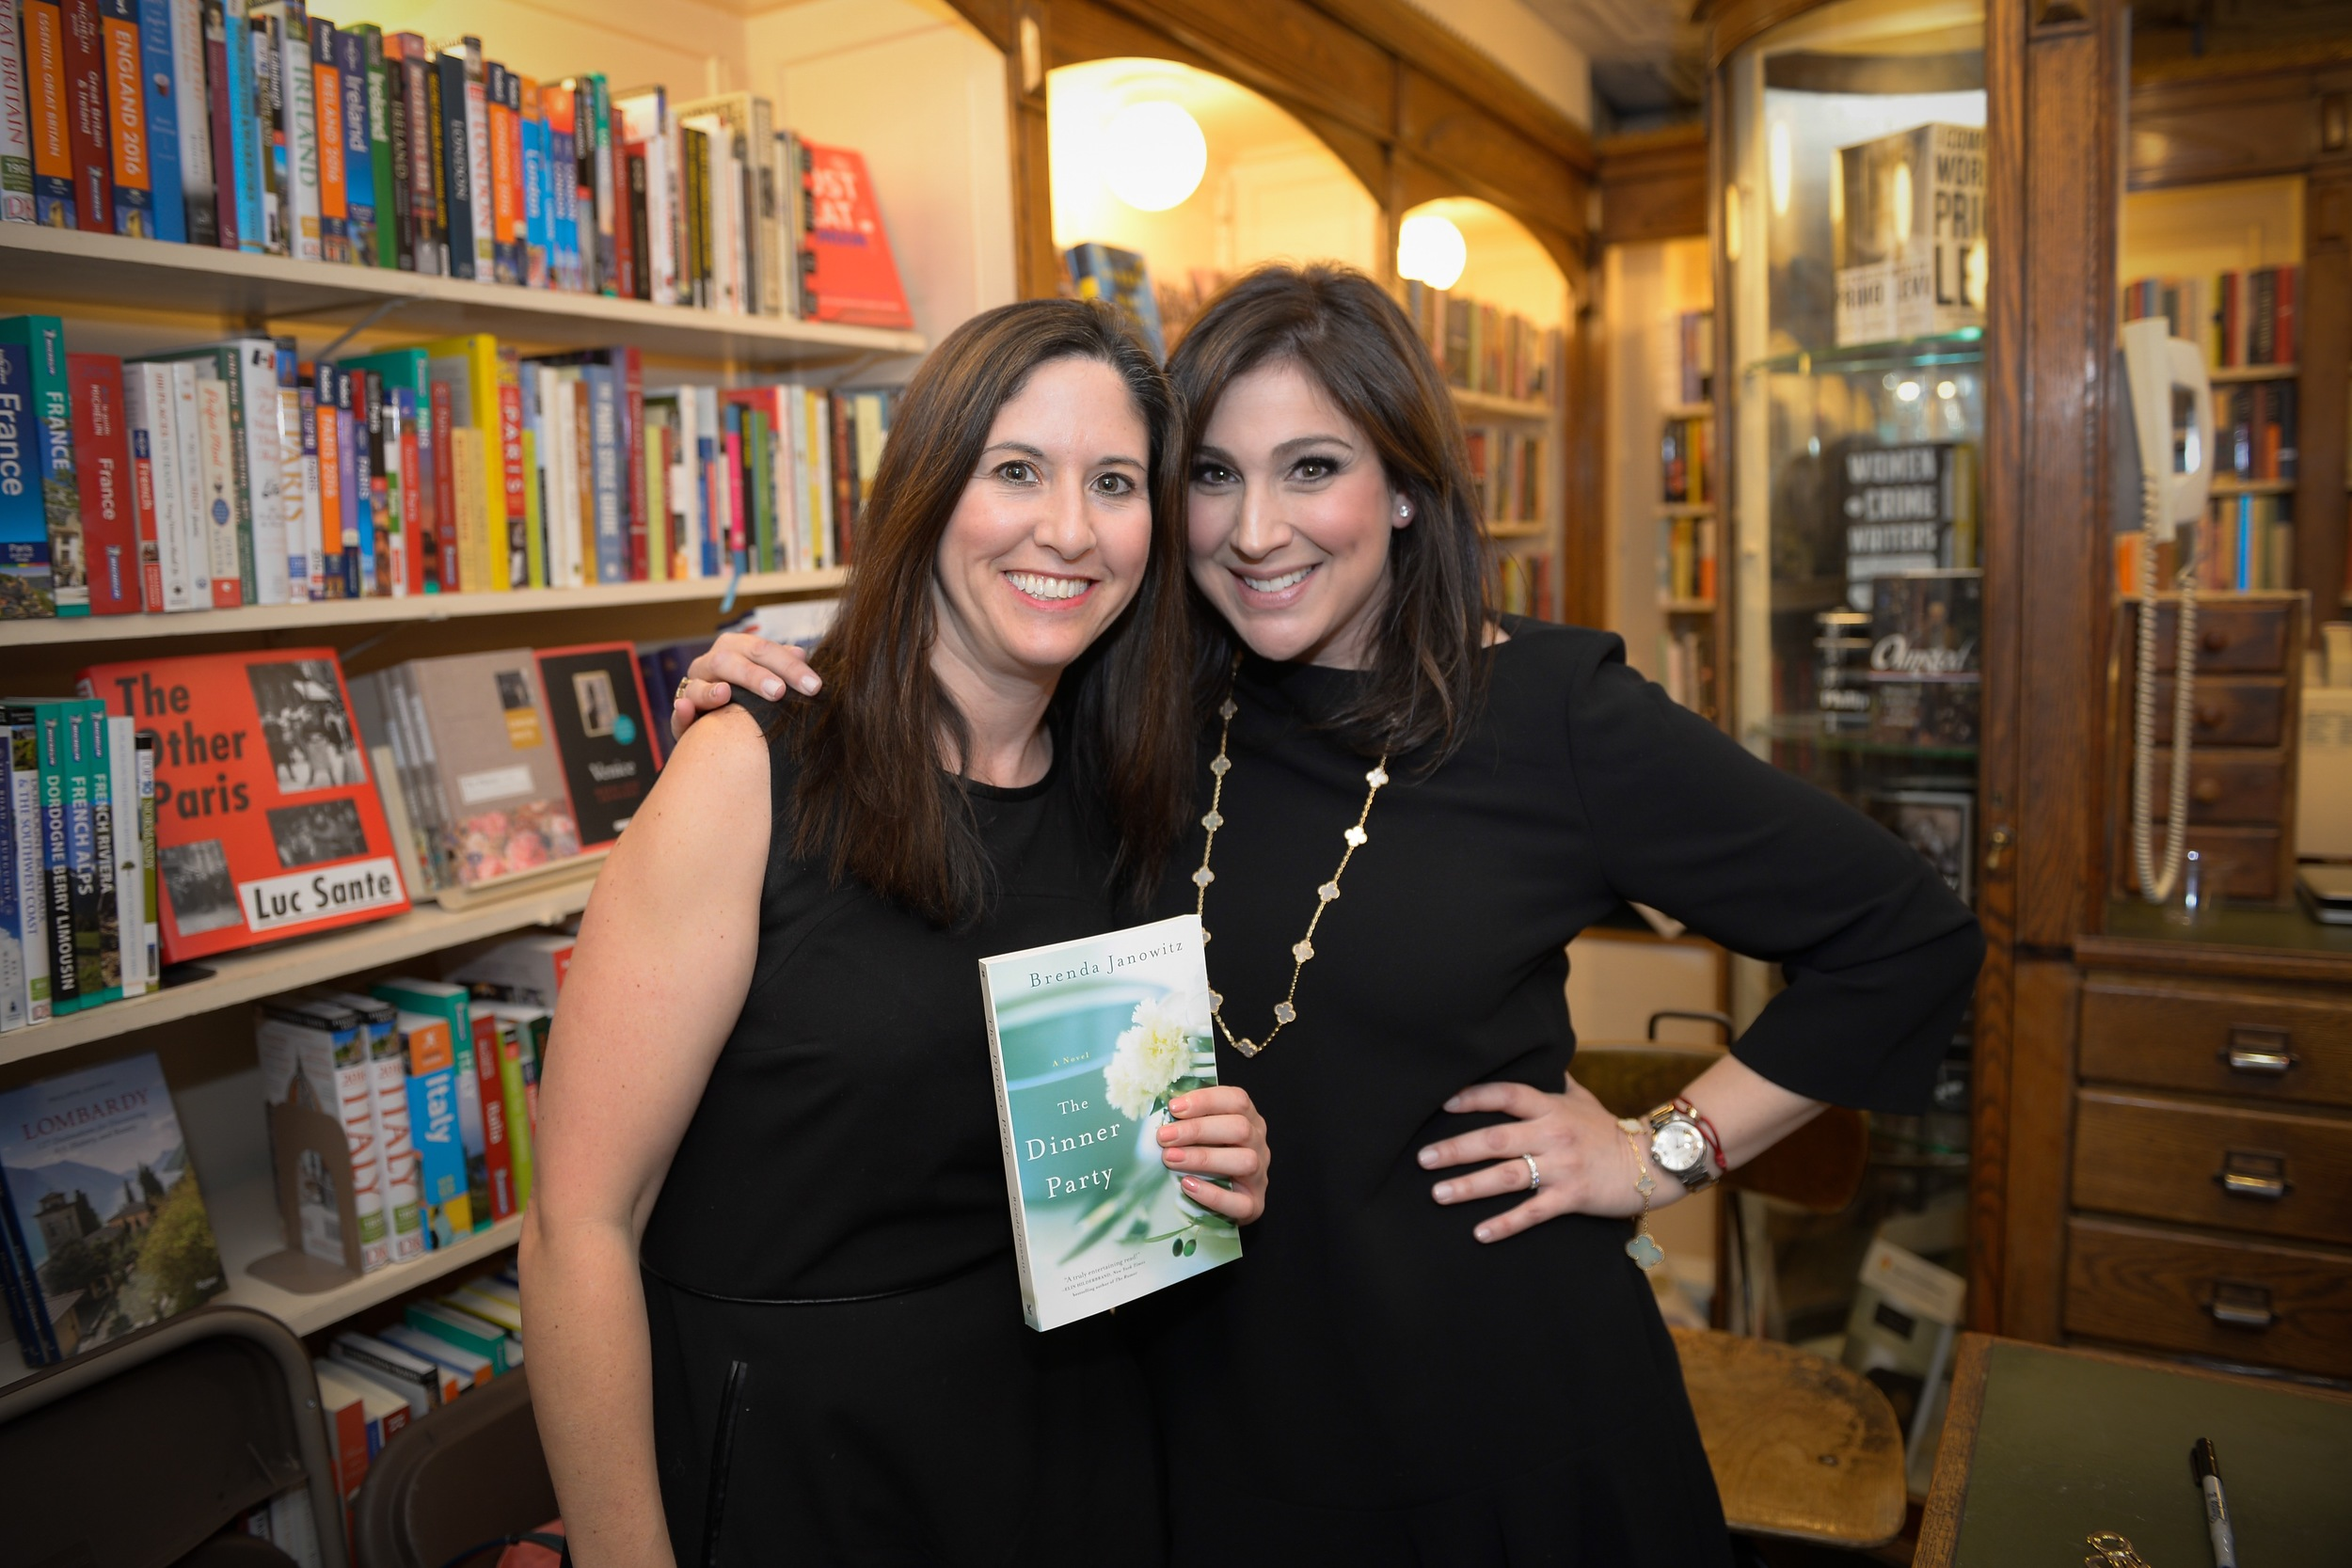 With author Meredith Schorr